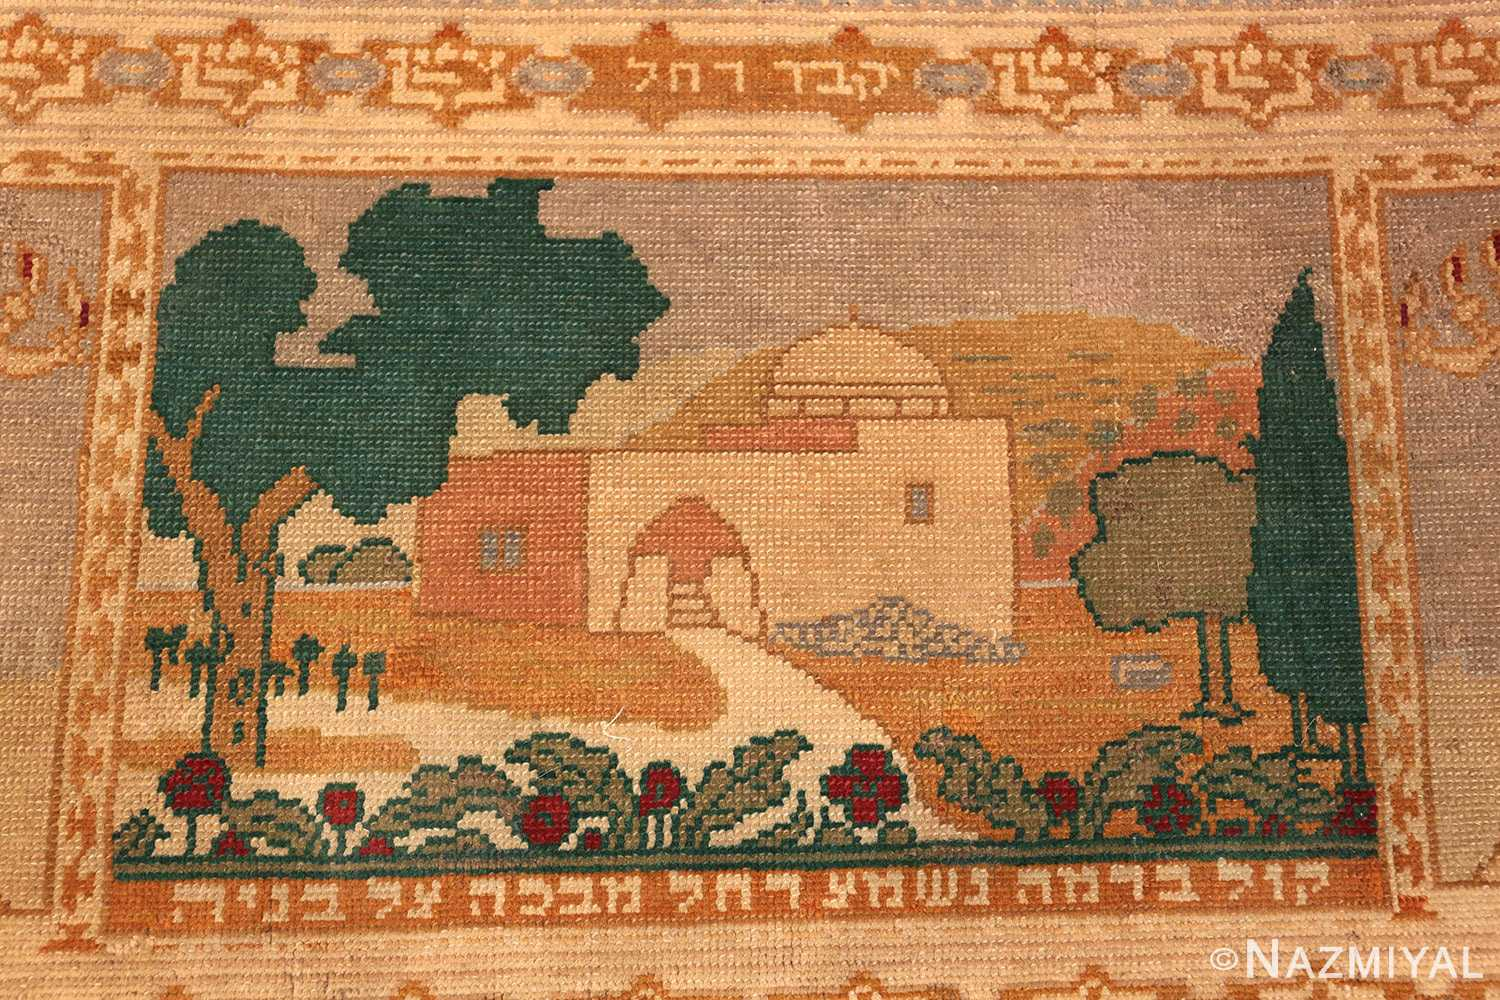 Antique Israeli Pictorial Bezalel Rachel's Tomb Rug #49981 from Nazmiyal Antique Rugs in NYC